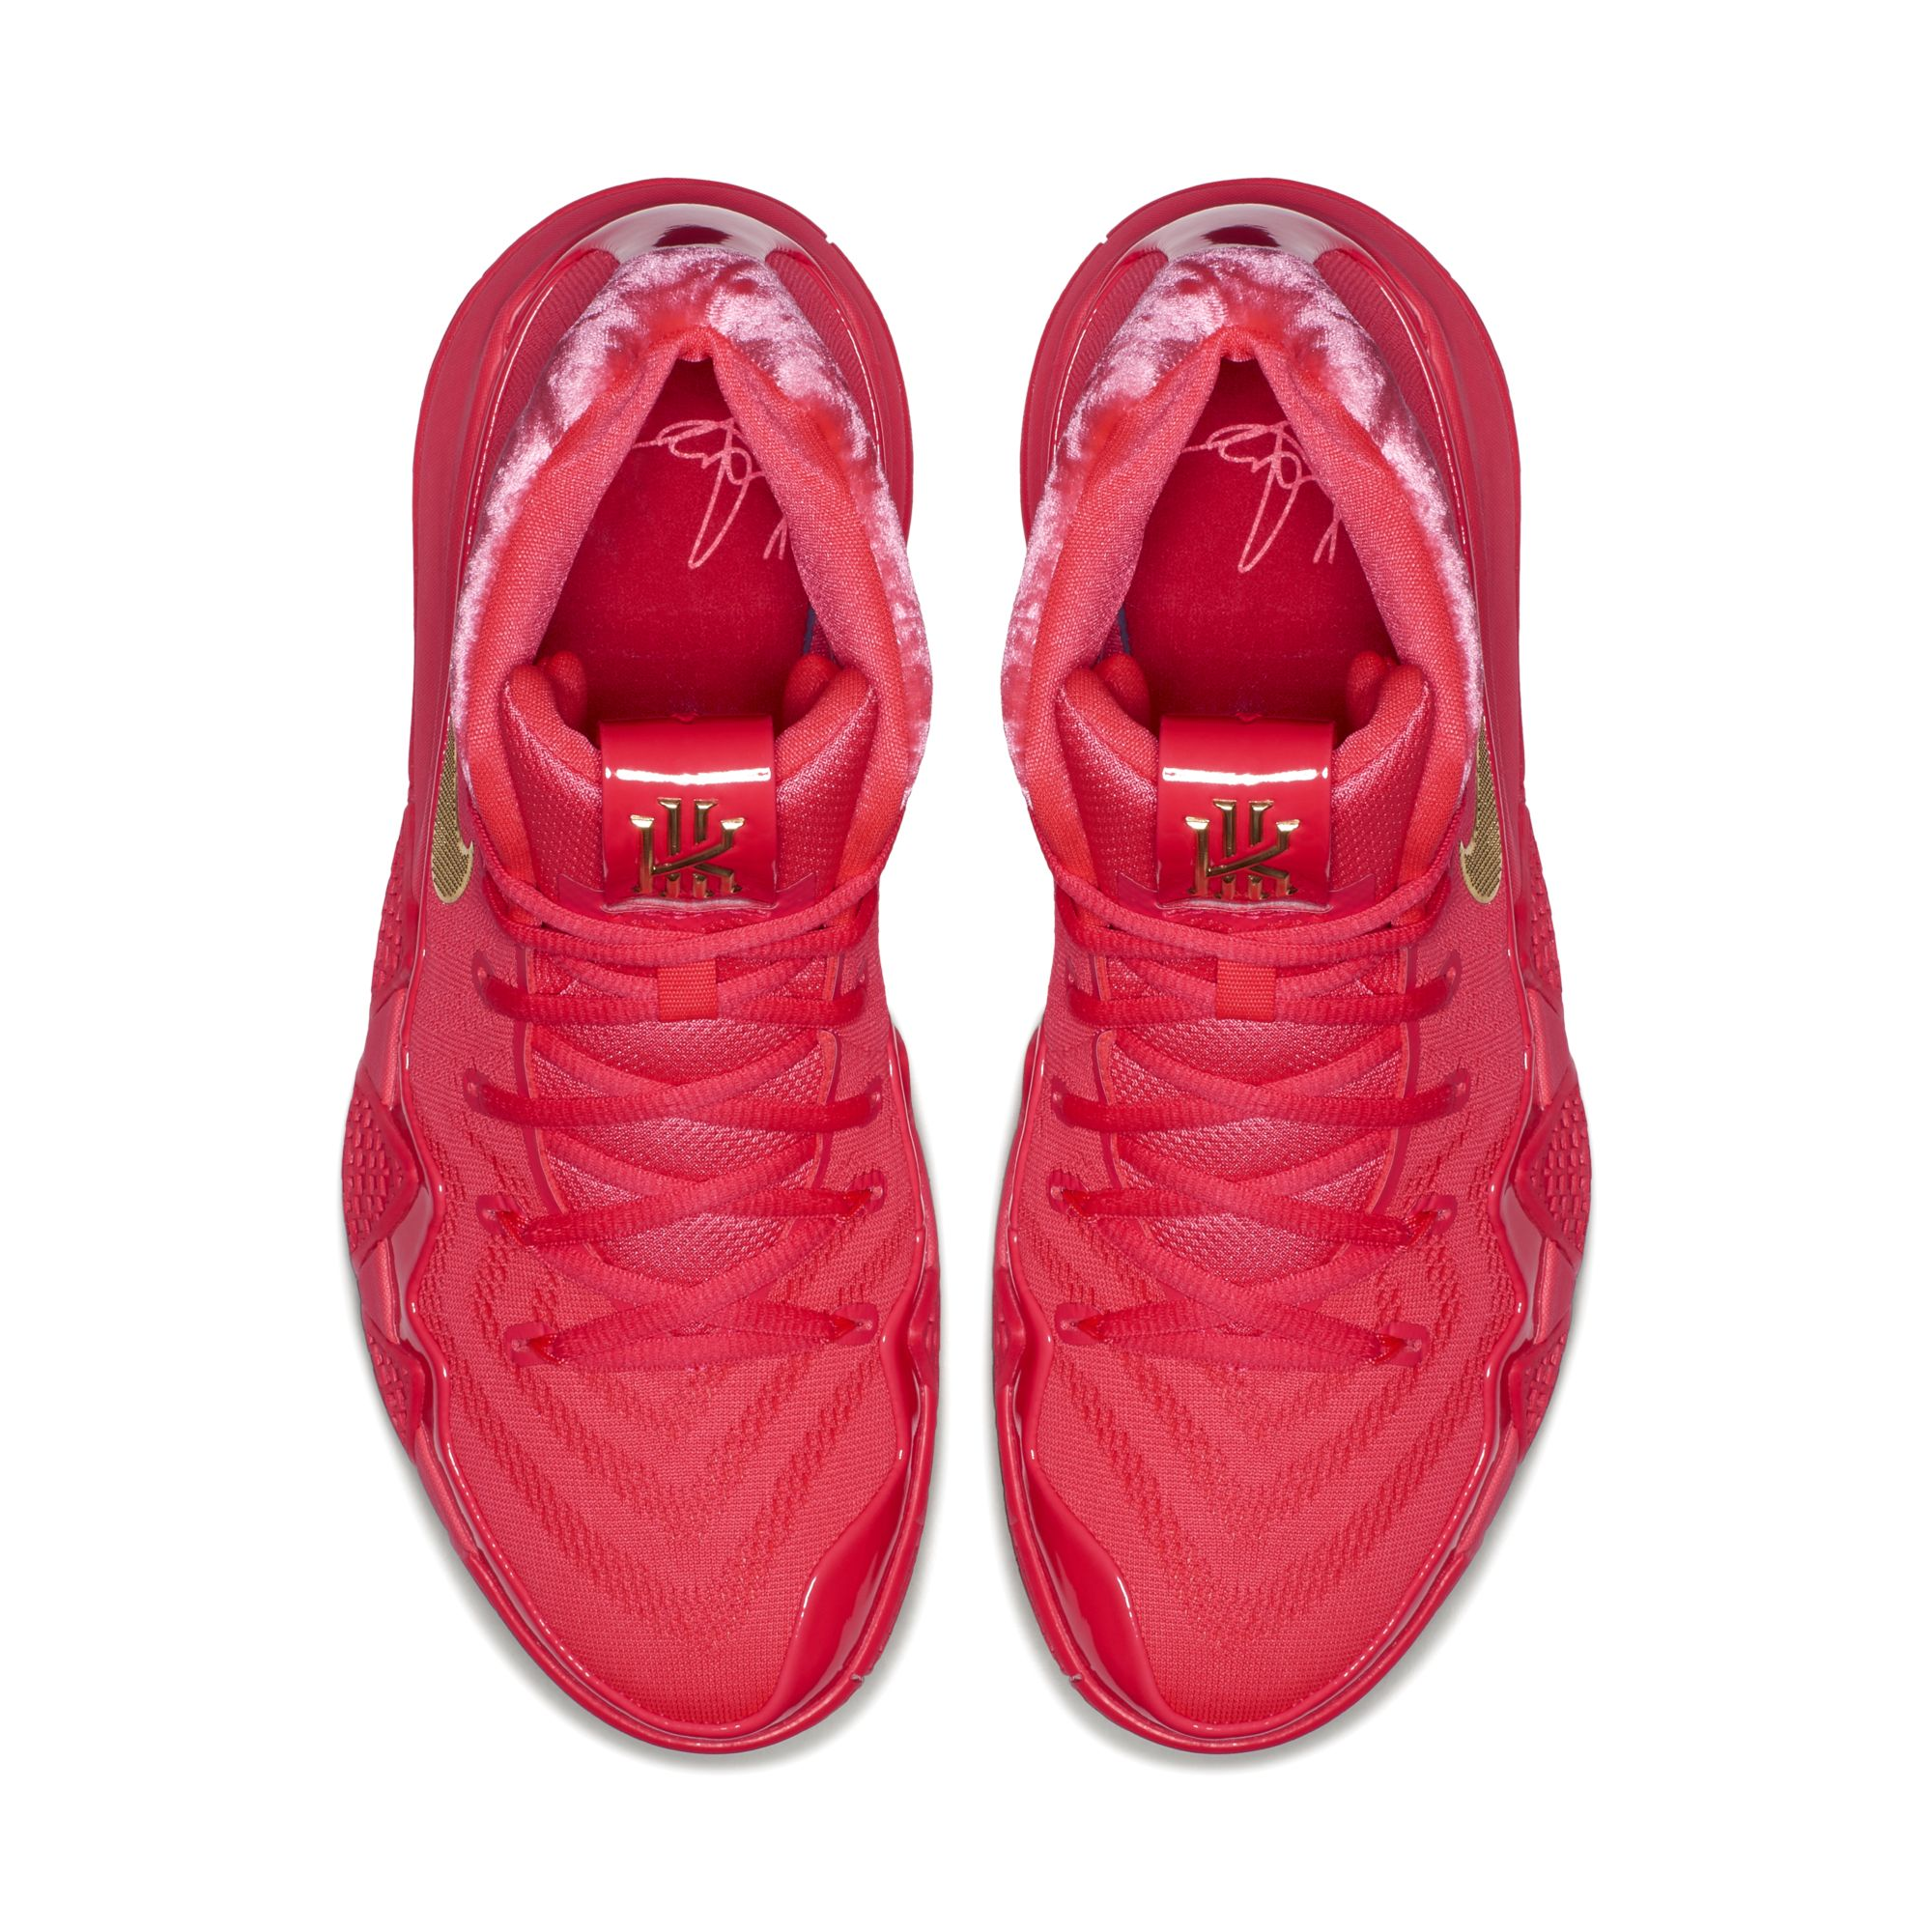 new style c7799 a743c where can i buy kyrie 2 university red carpet fe9d4 06b74